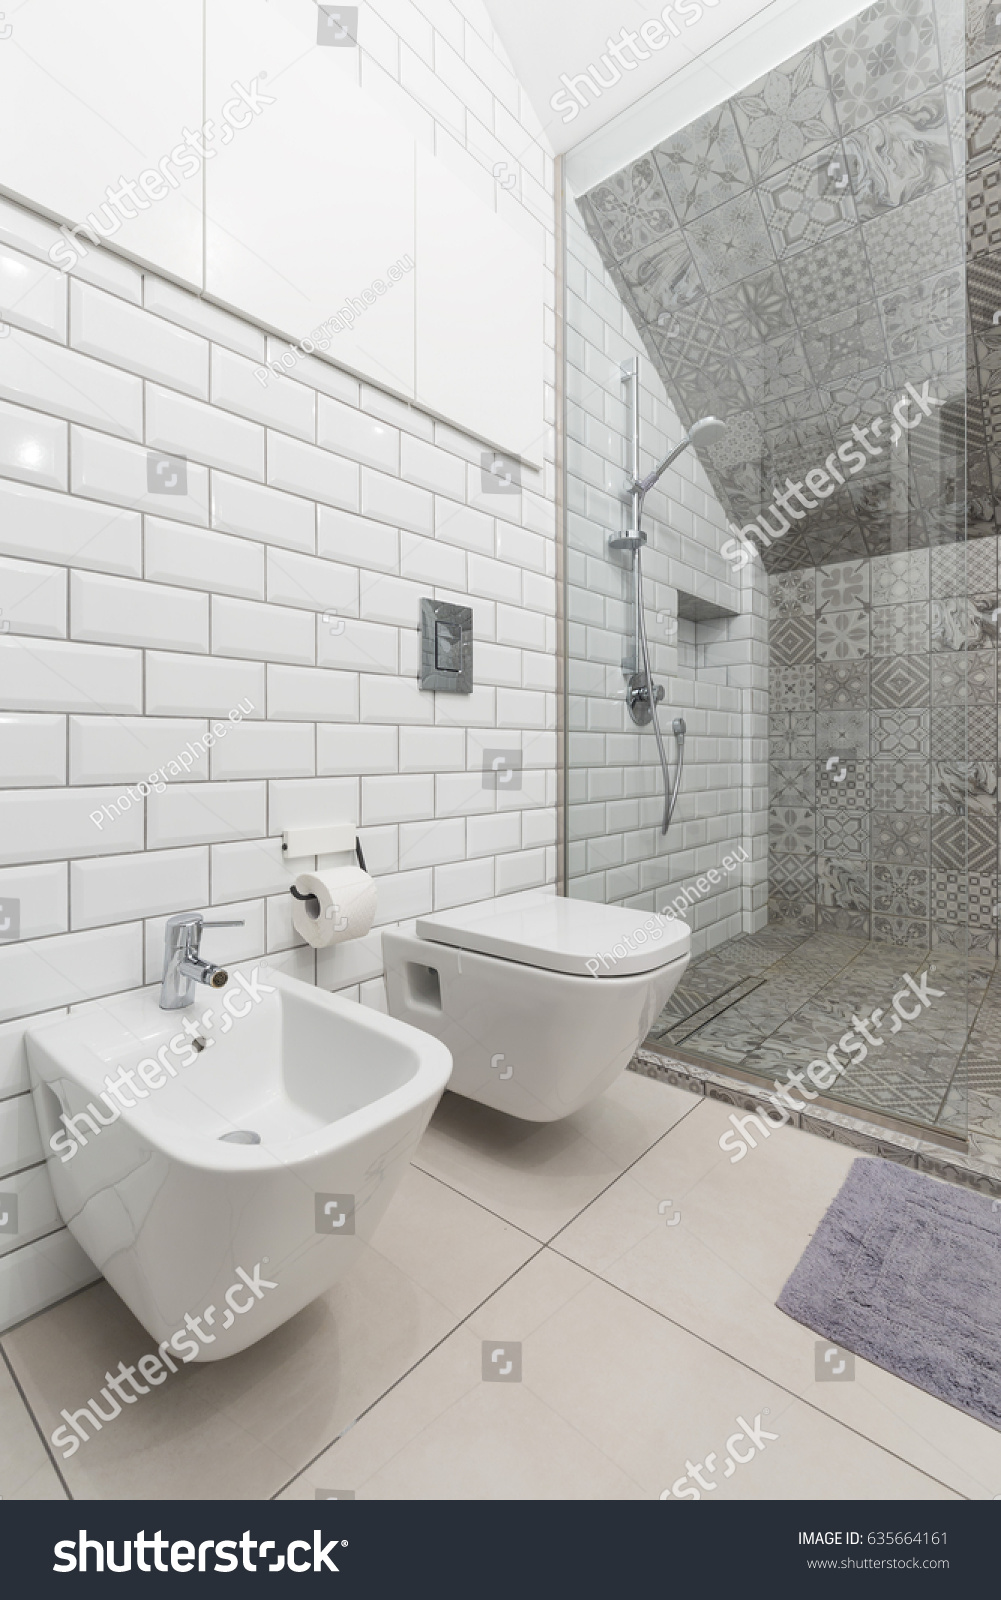 White Brick Tiles Creative Bathroom Toilet Stock Photo (Edit Now ...